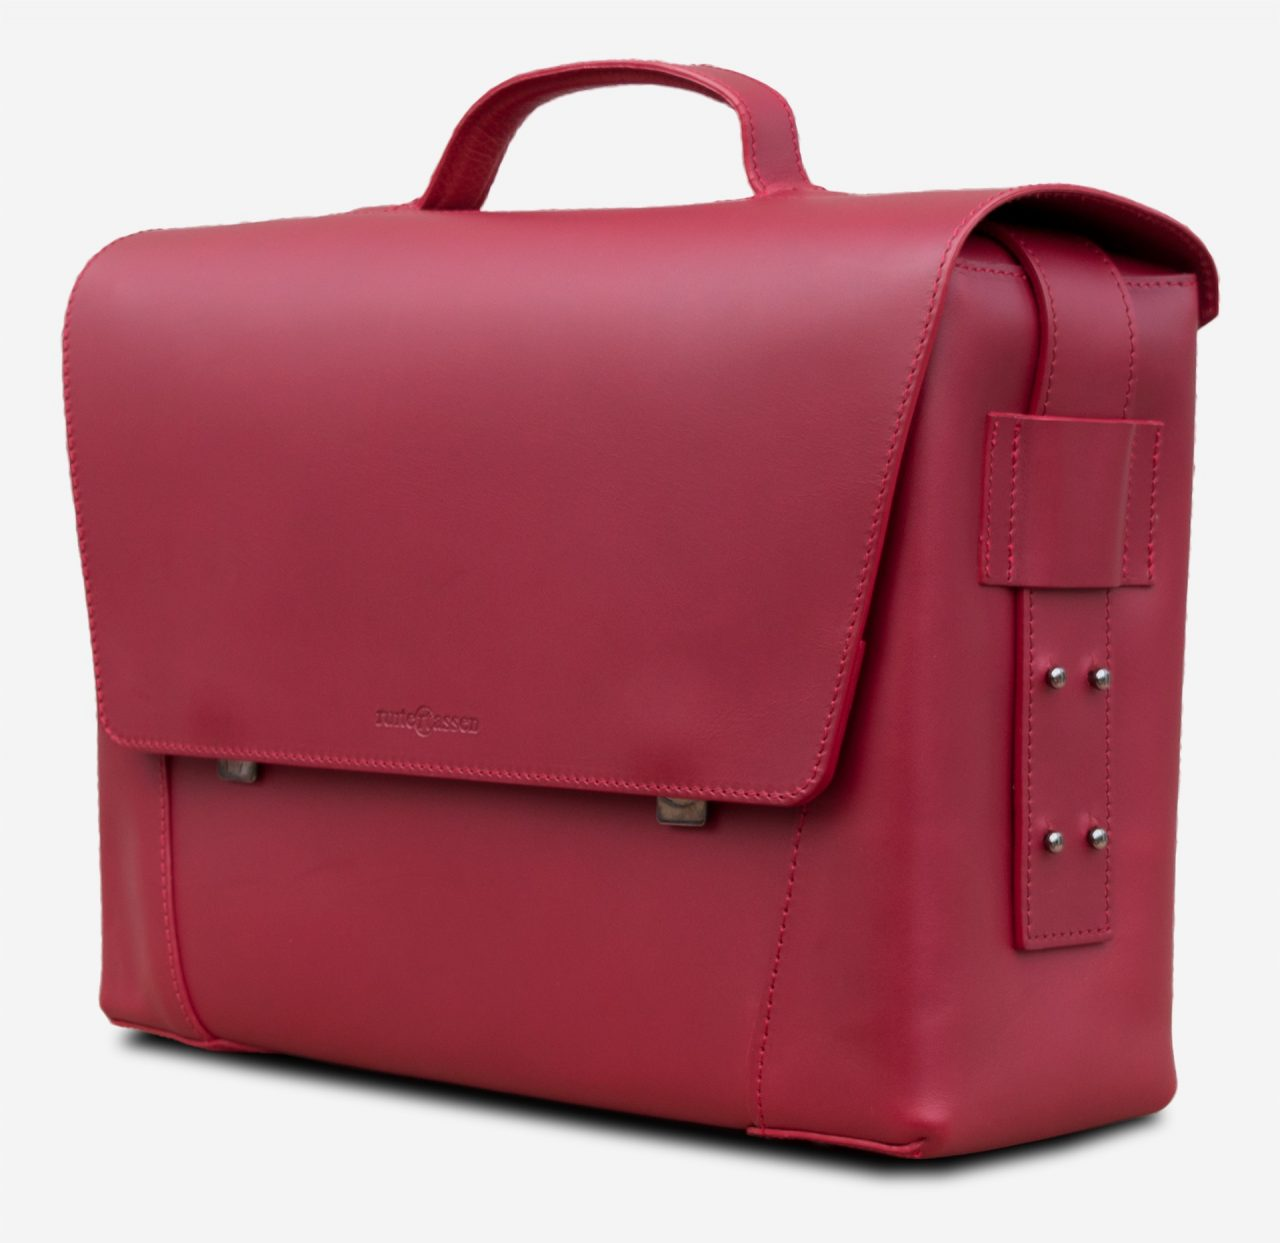 Side view of the large red vegetable-tanned leather briefcase bag with laptop pocket for women.